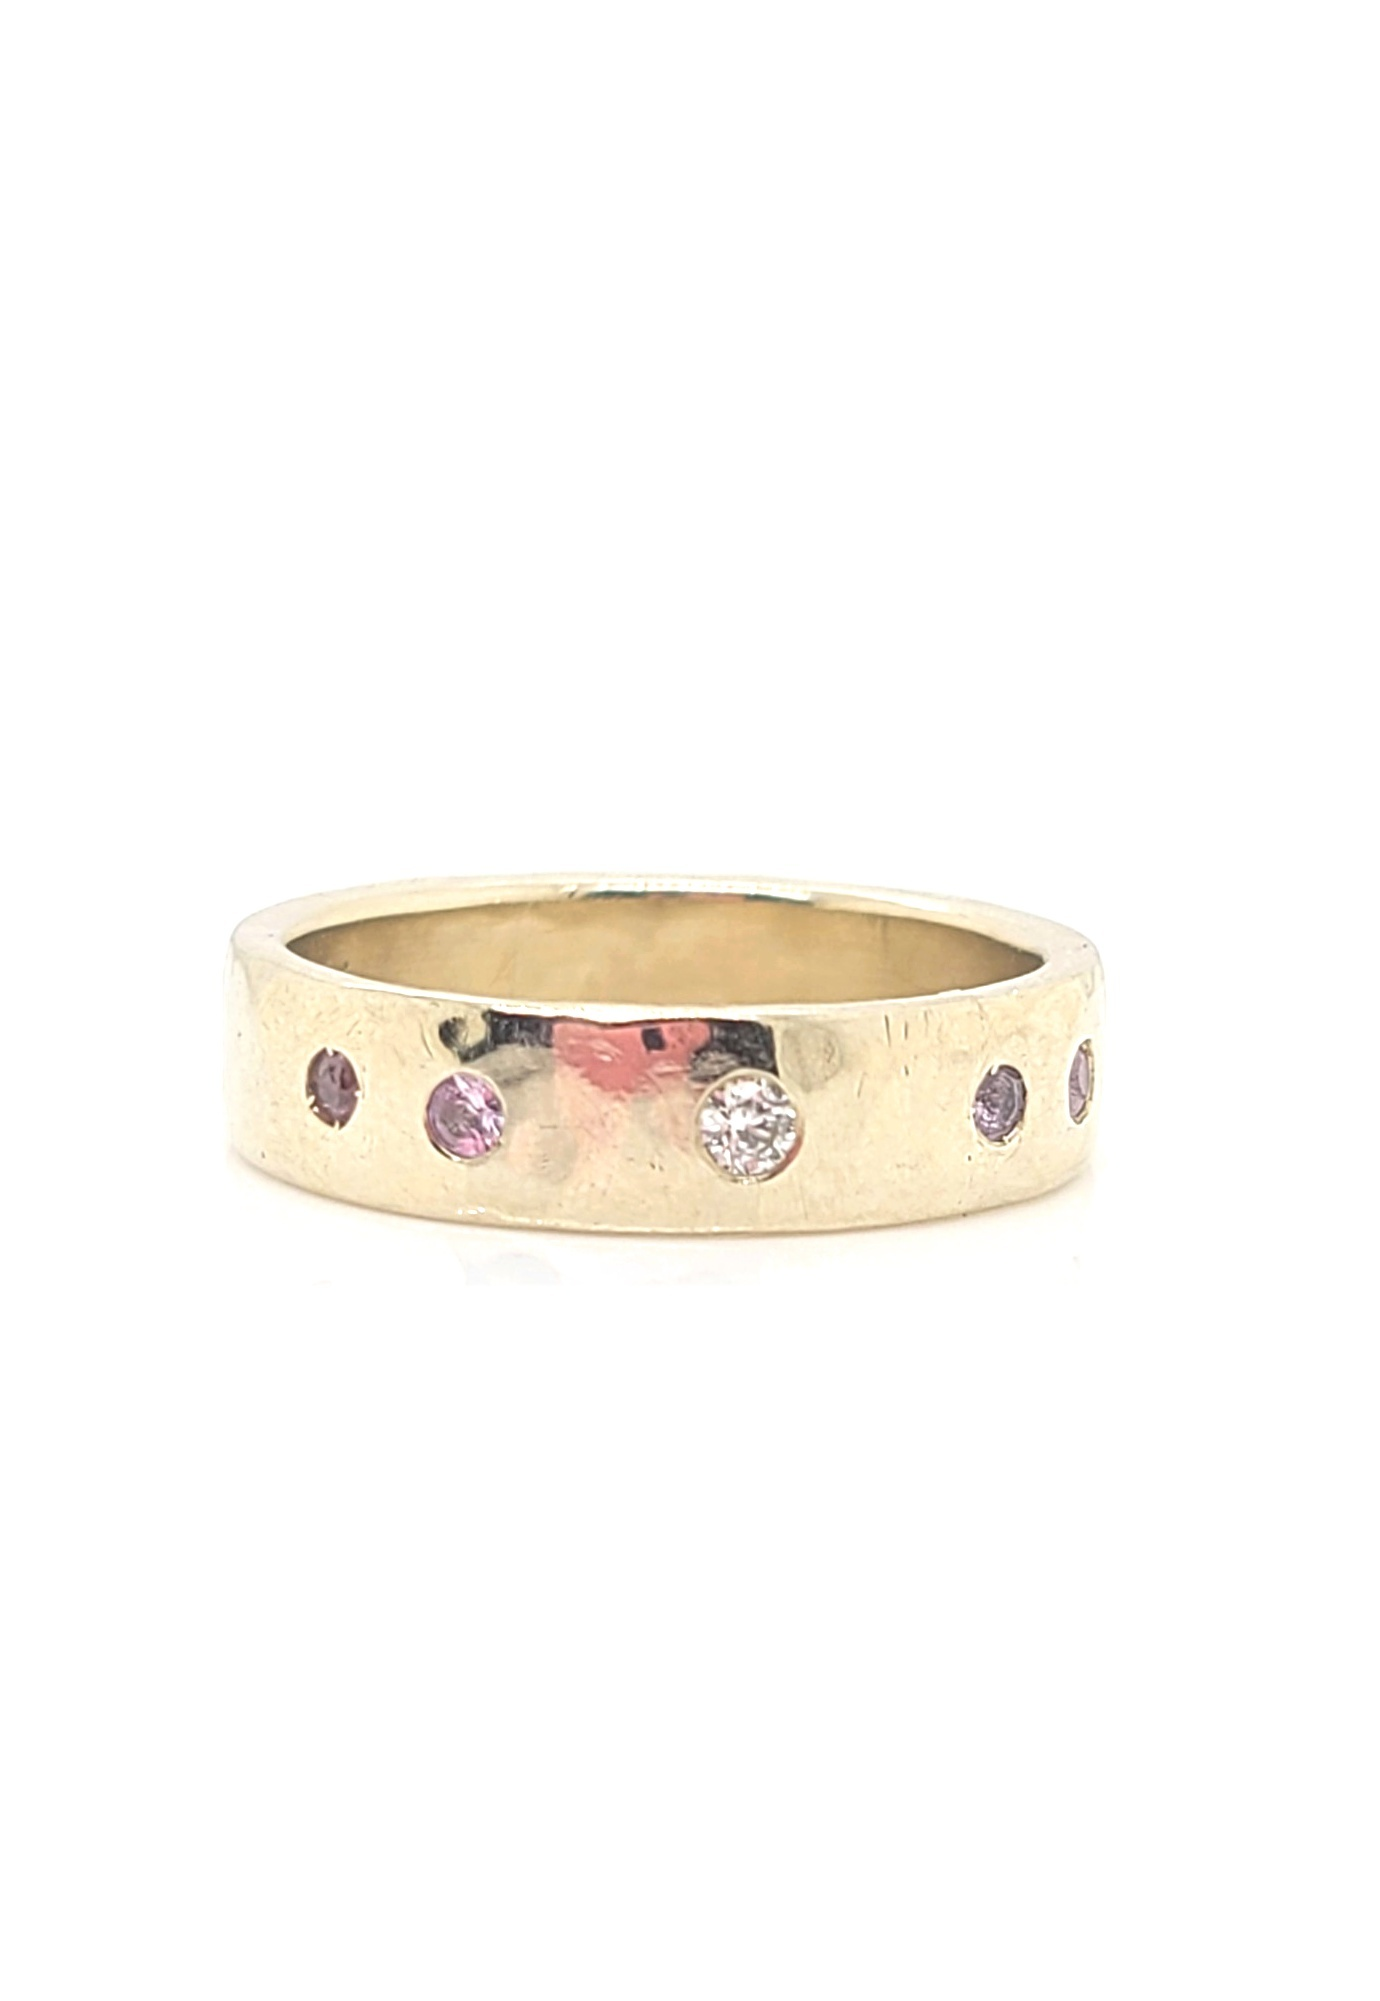 14kt White Gold Band with White Diamonds and Pink Sapphires